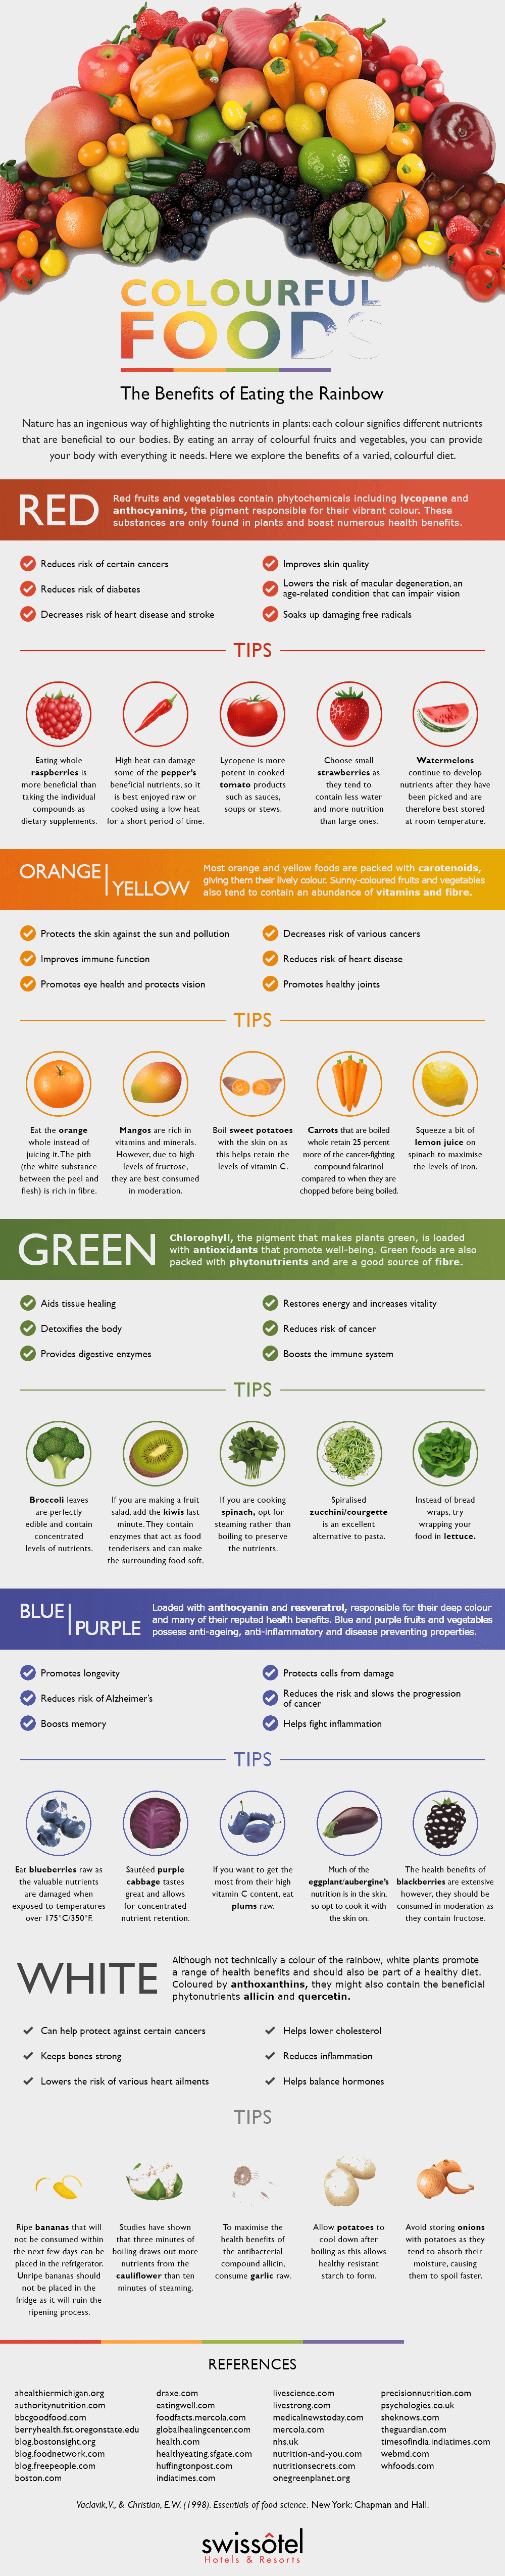 Colourful Foods Infographic